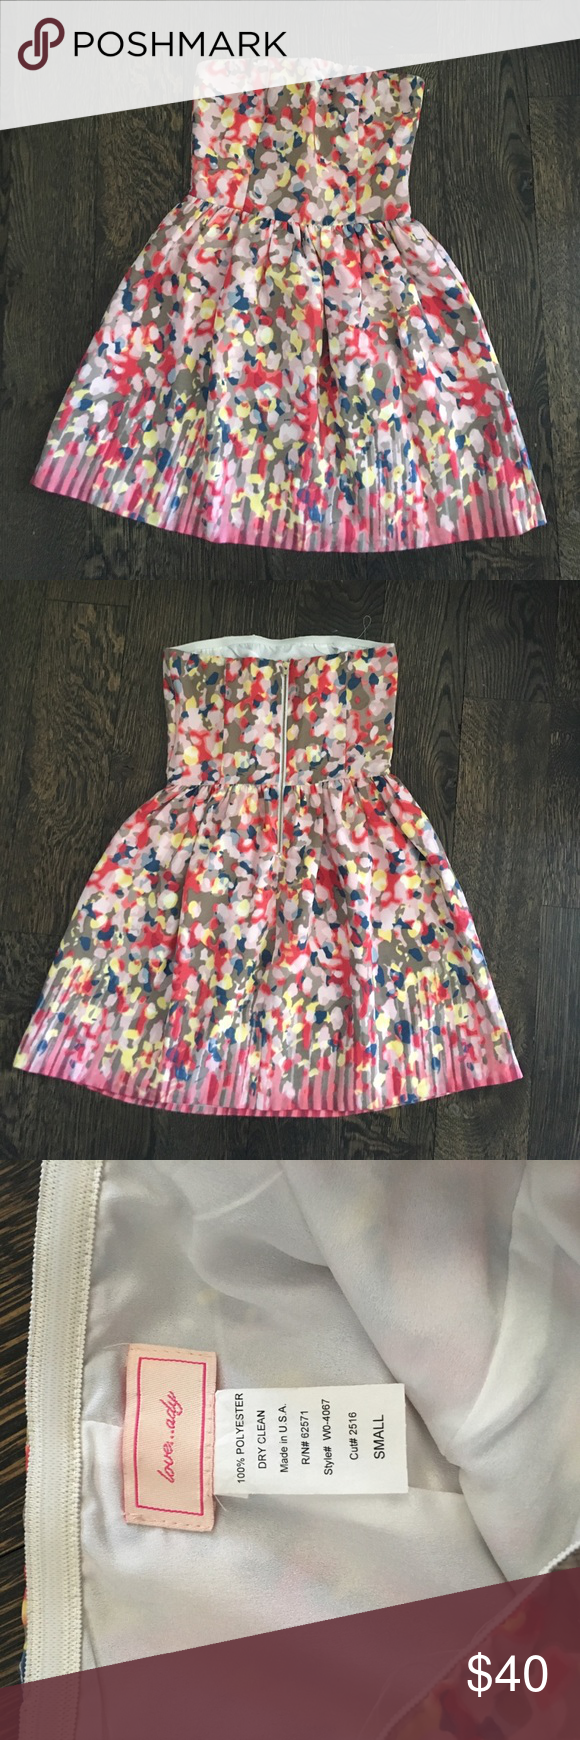 Strapless dress Really cute strapless dress with zipper detail in the back. I wore it once to a bridal shower and got so many compliments! love...ady Dresses Strapless